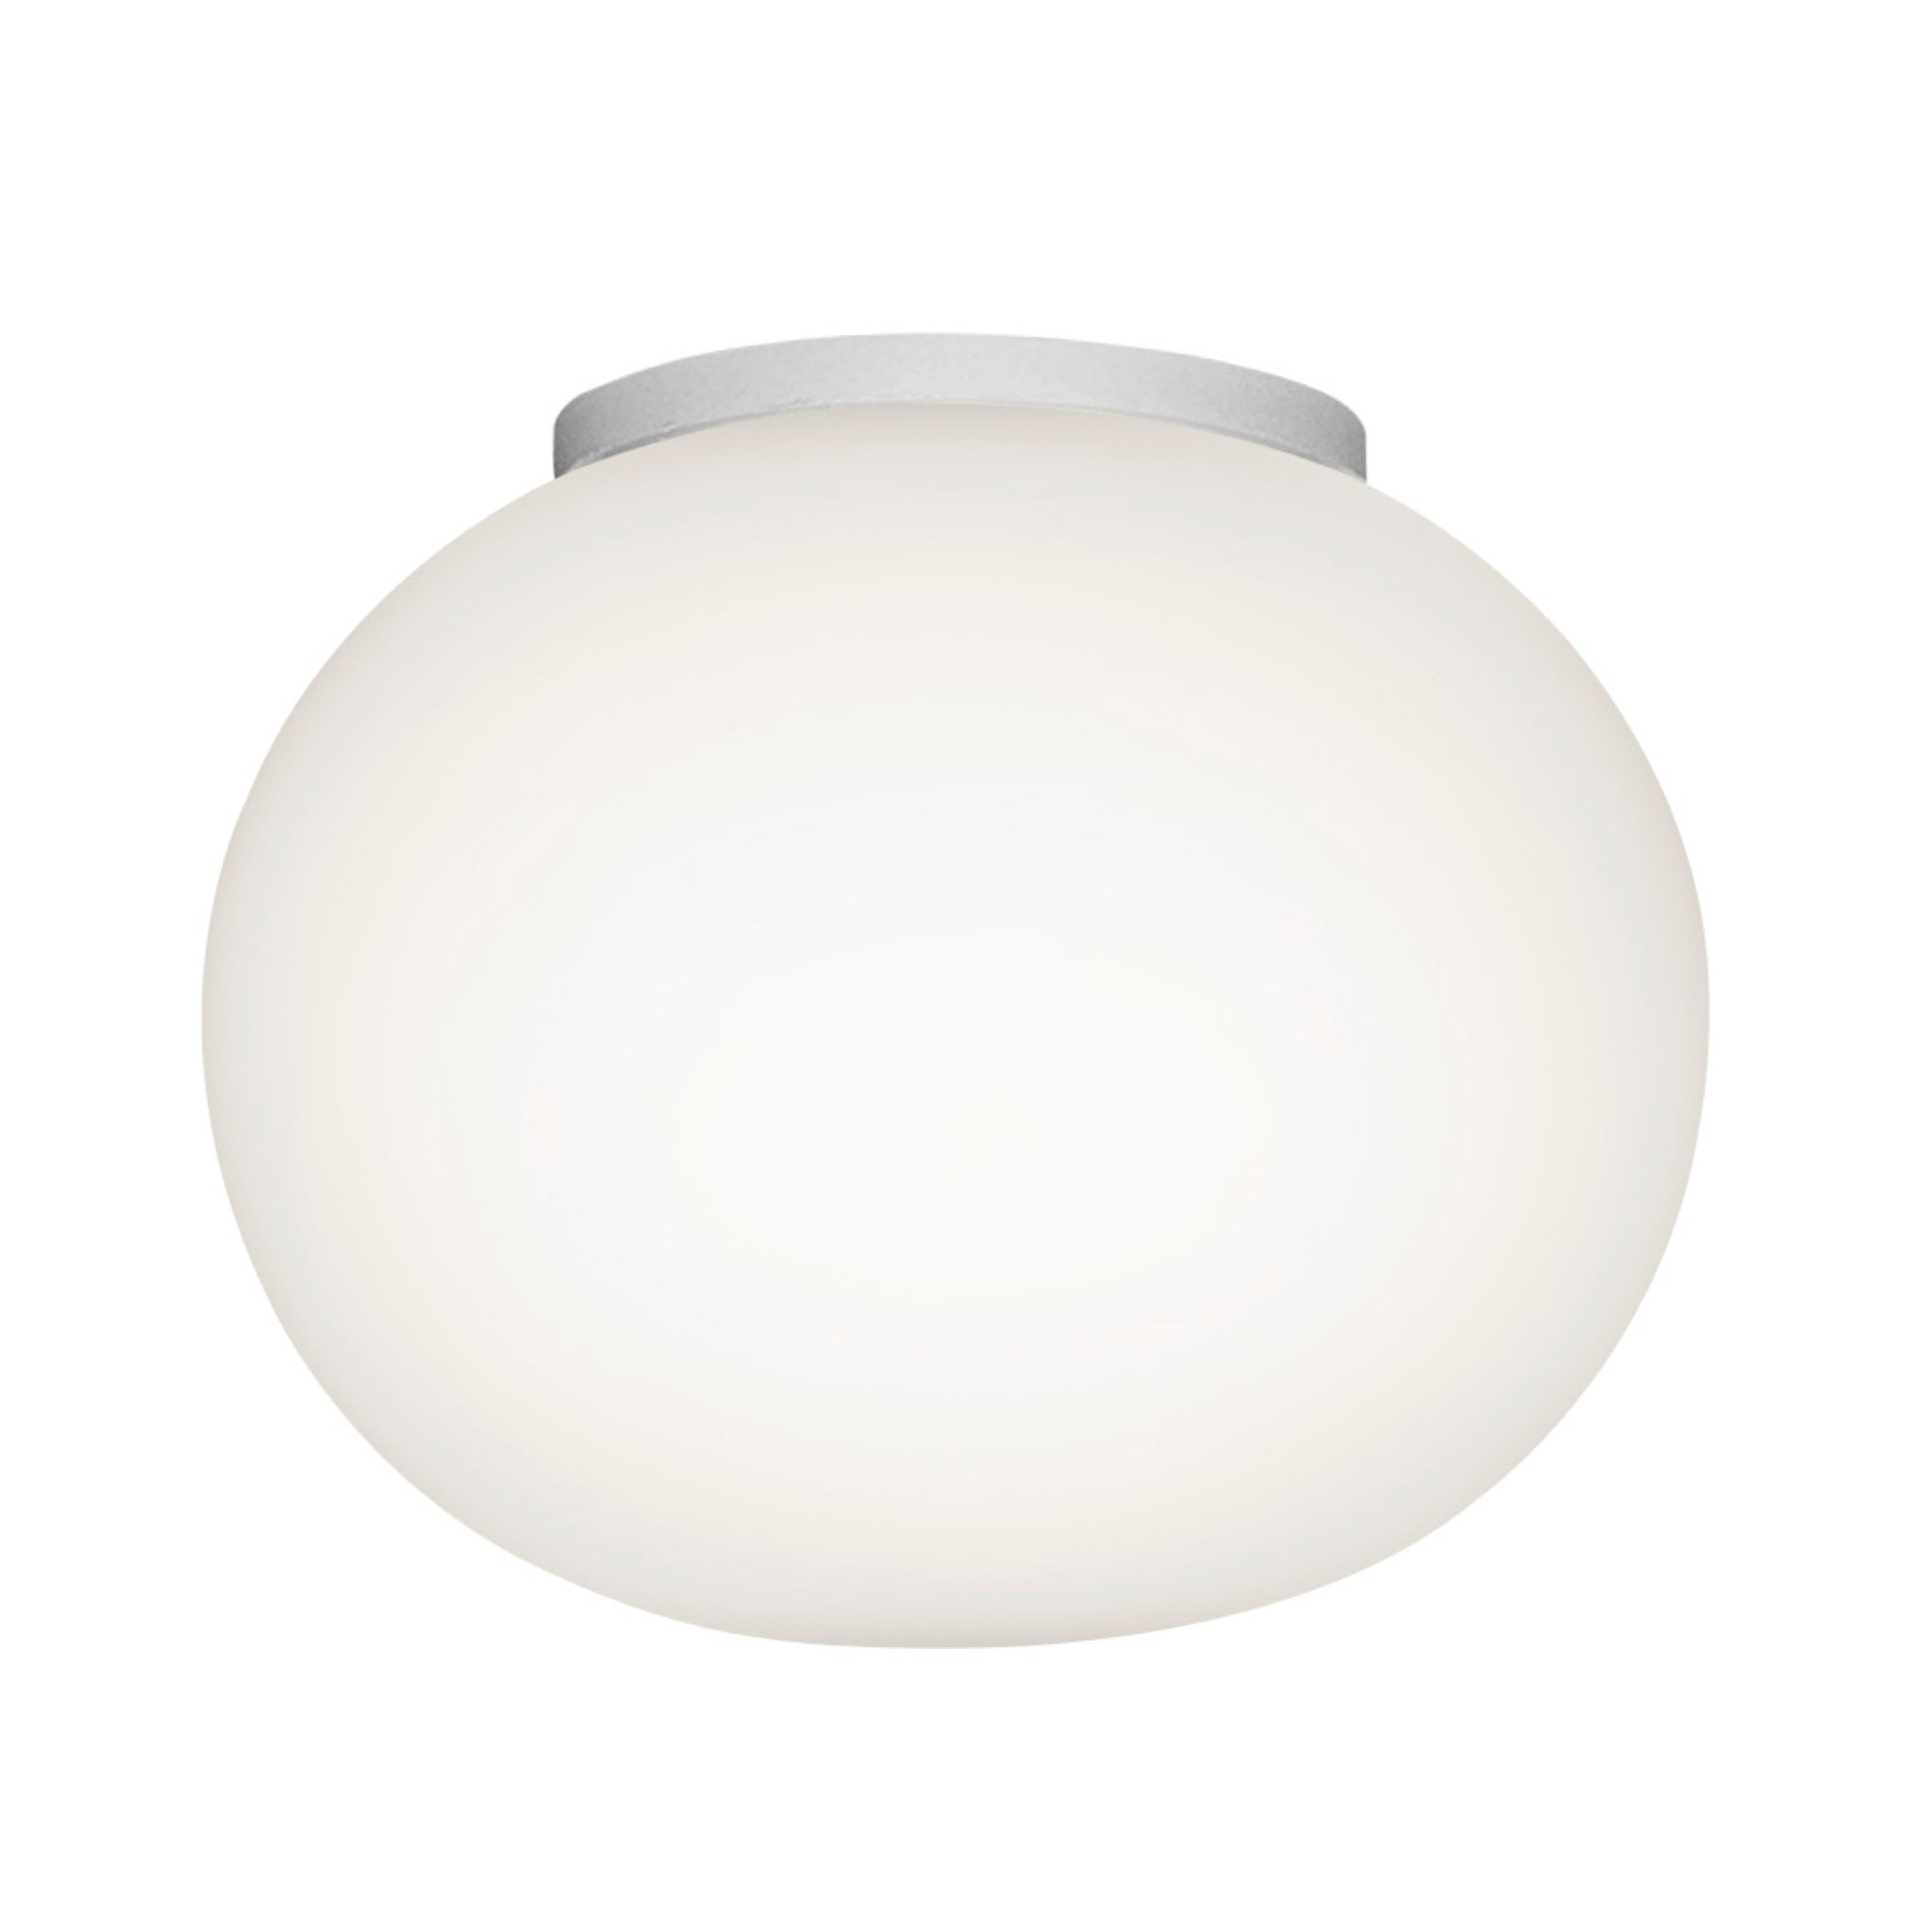 Mini Glo Ball Wall / Ceiling Light by Flos